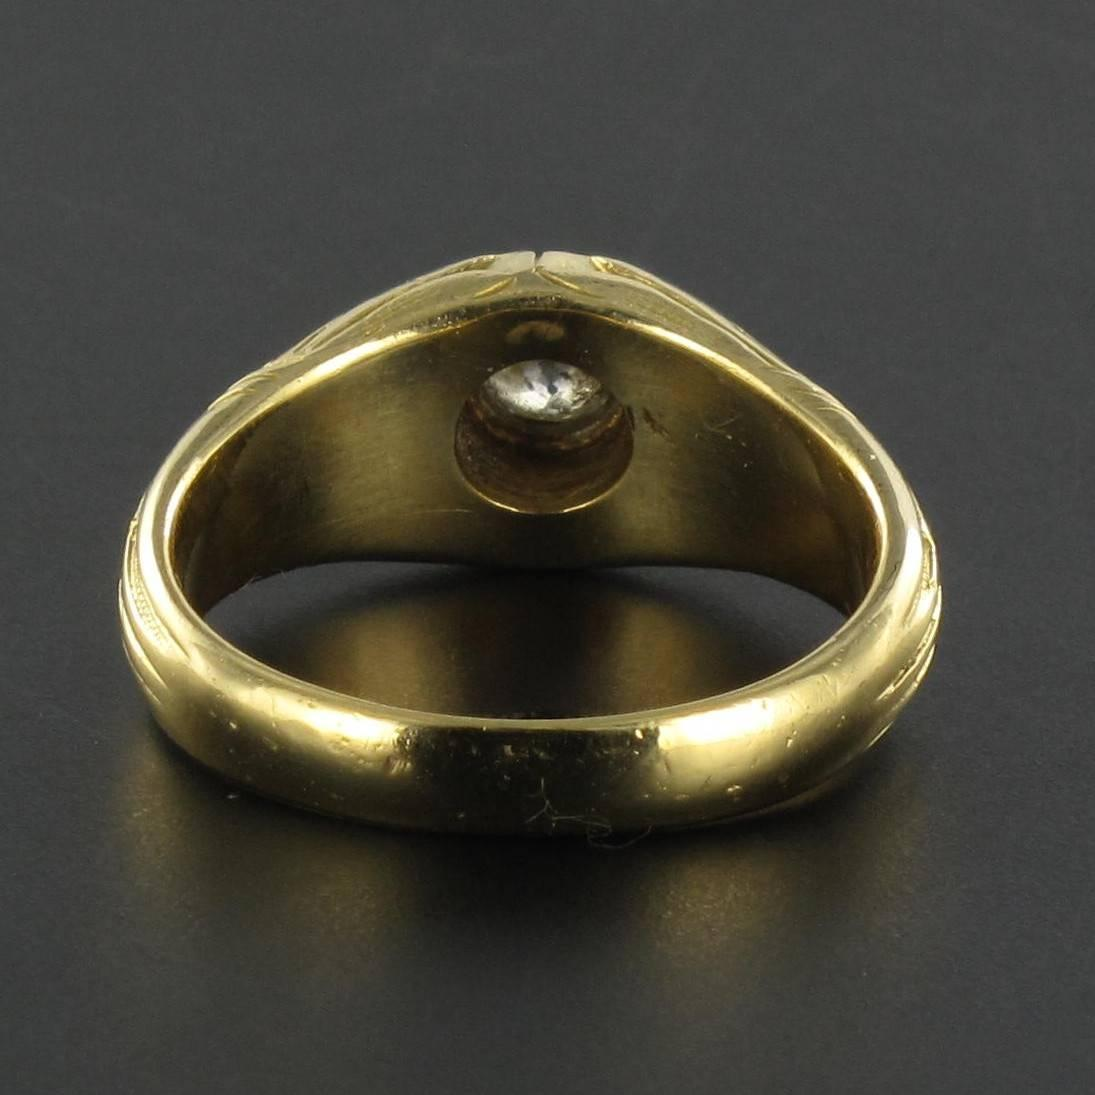 Antique Engraved Men's Diamond Gold Signet Ring at 1stdibs